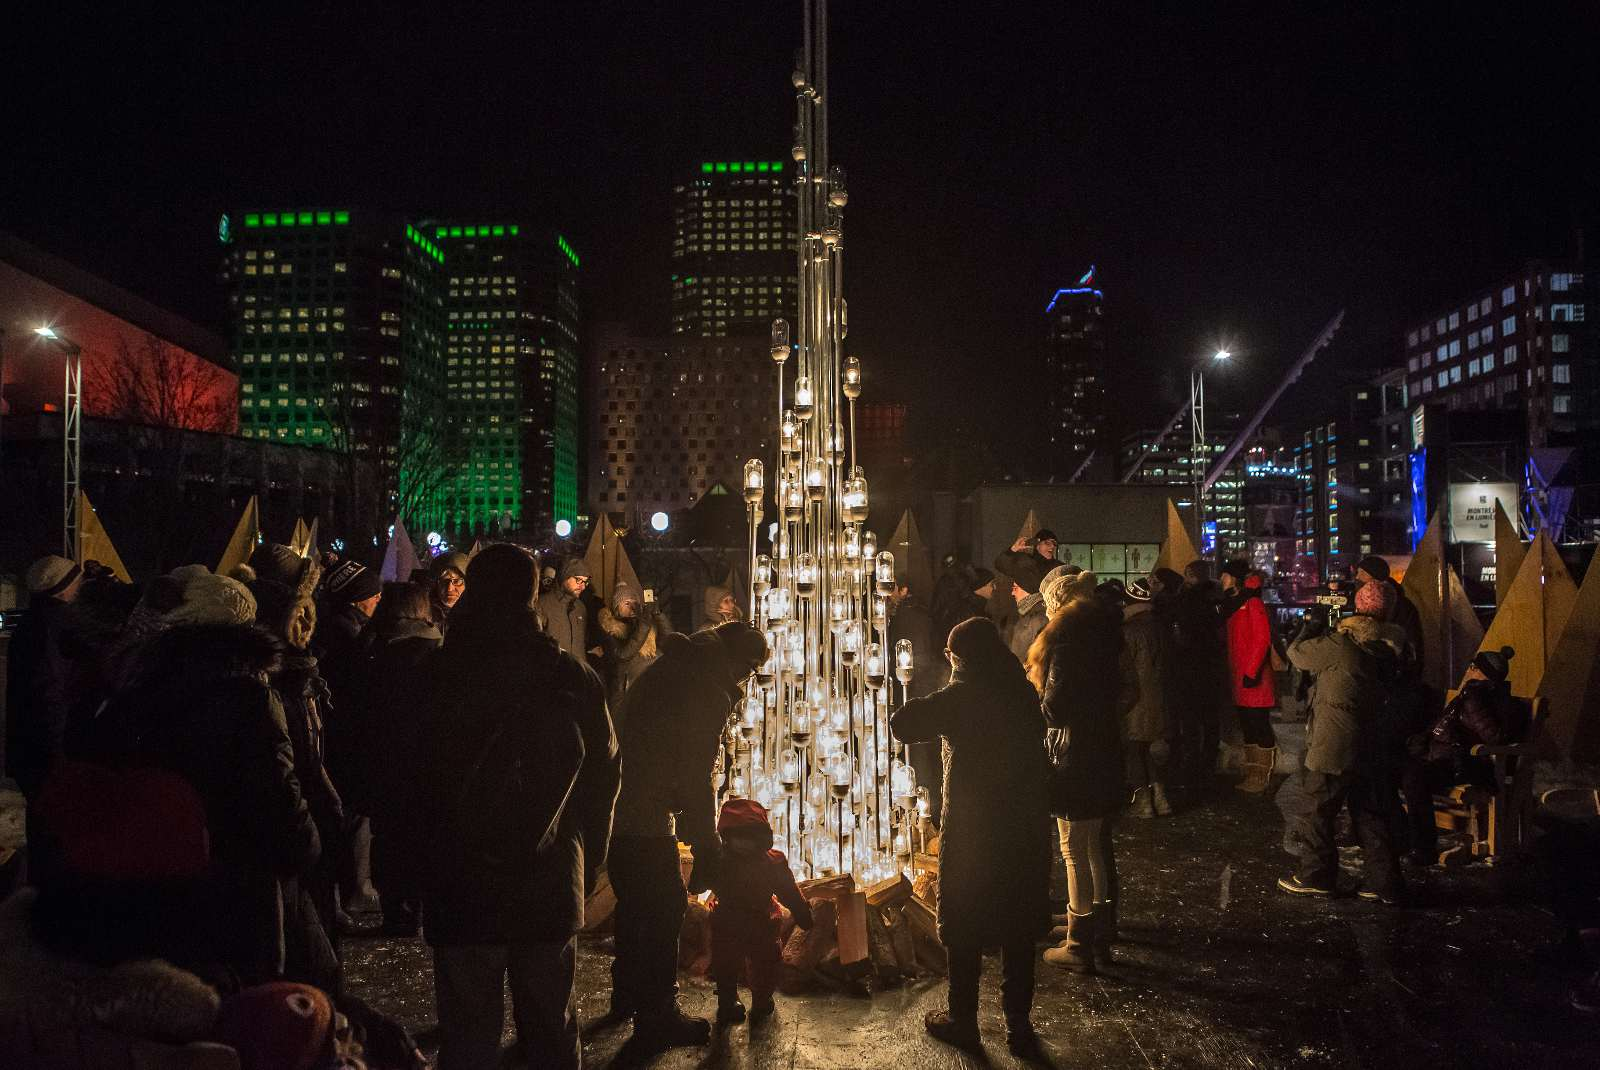 Montreal festivals in March 2017 include Nuit Blanche.